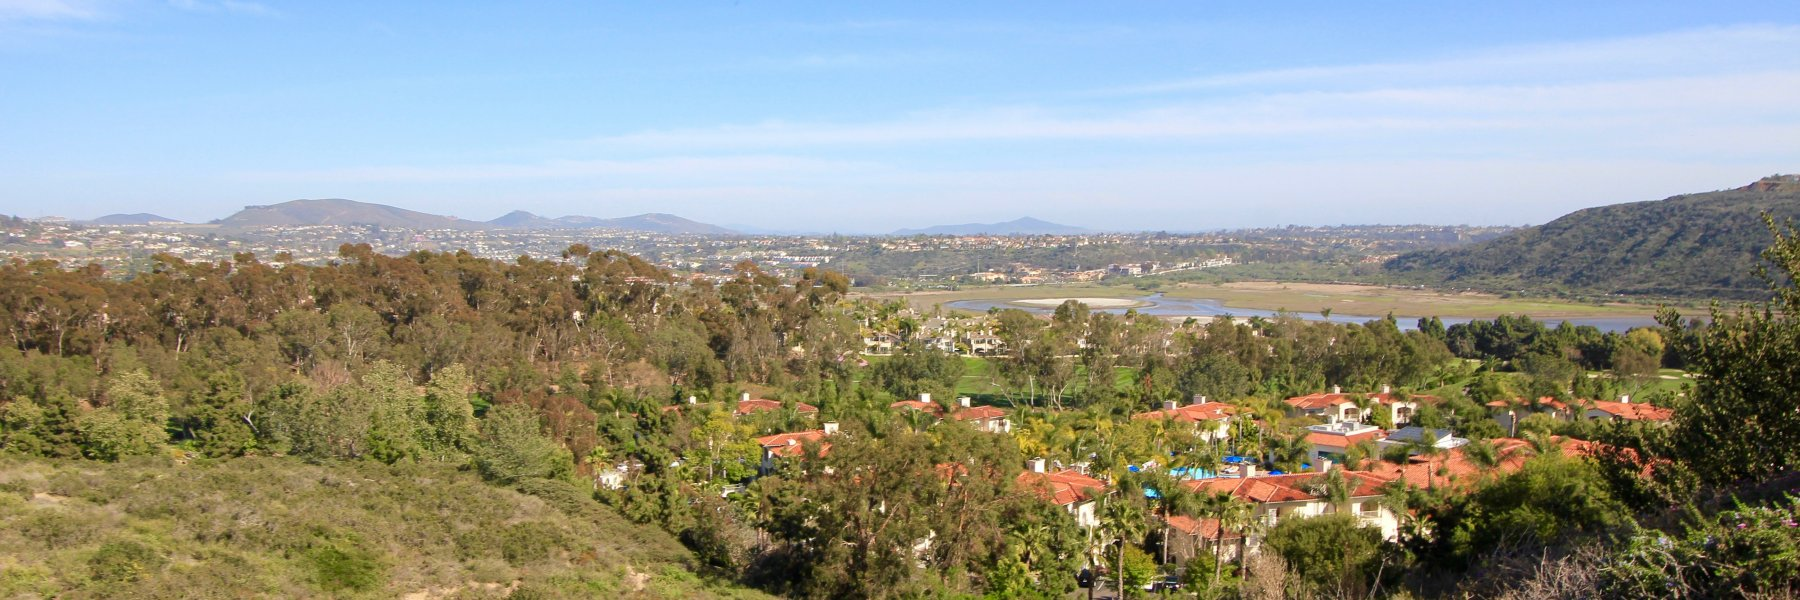 Aviara is a community of homes in Carlsbad California